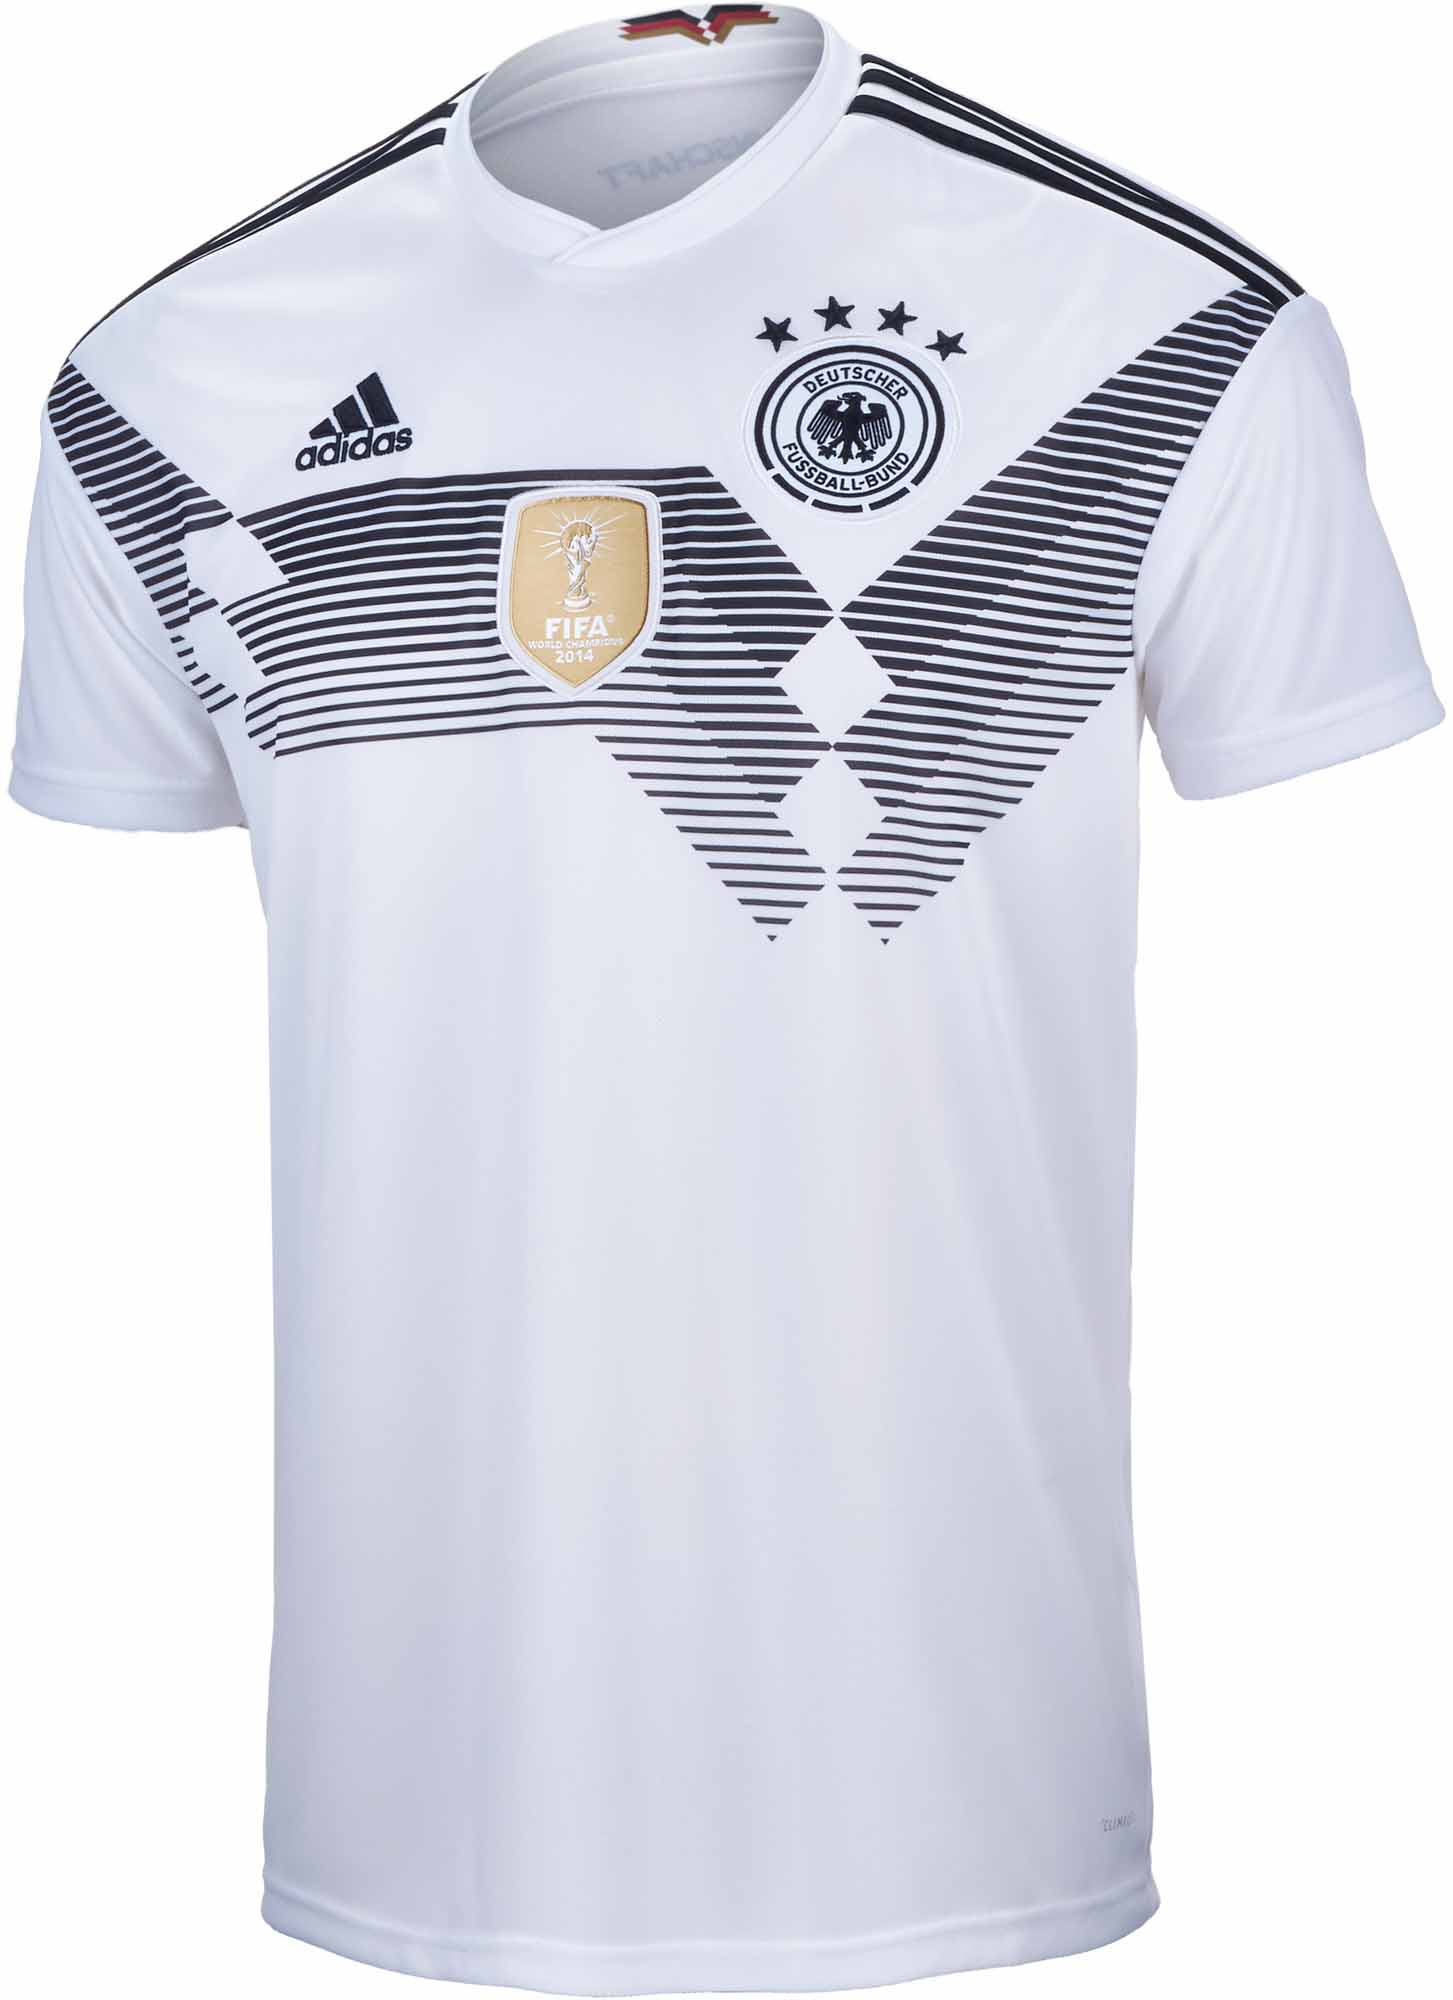 8012e8df756 2018 19 adidas Germany Authentic Home Jersey - Soccer Master